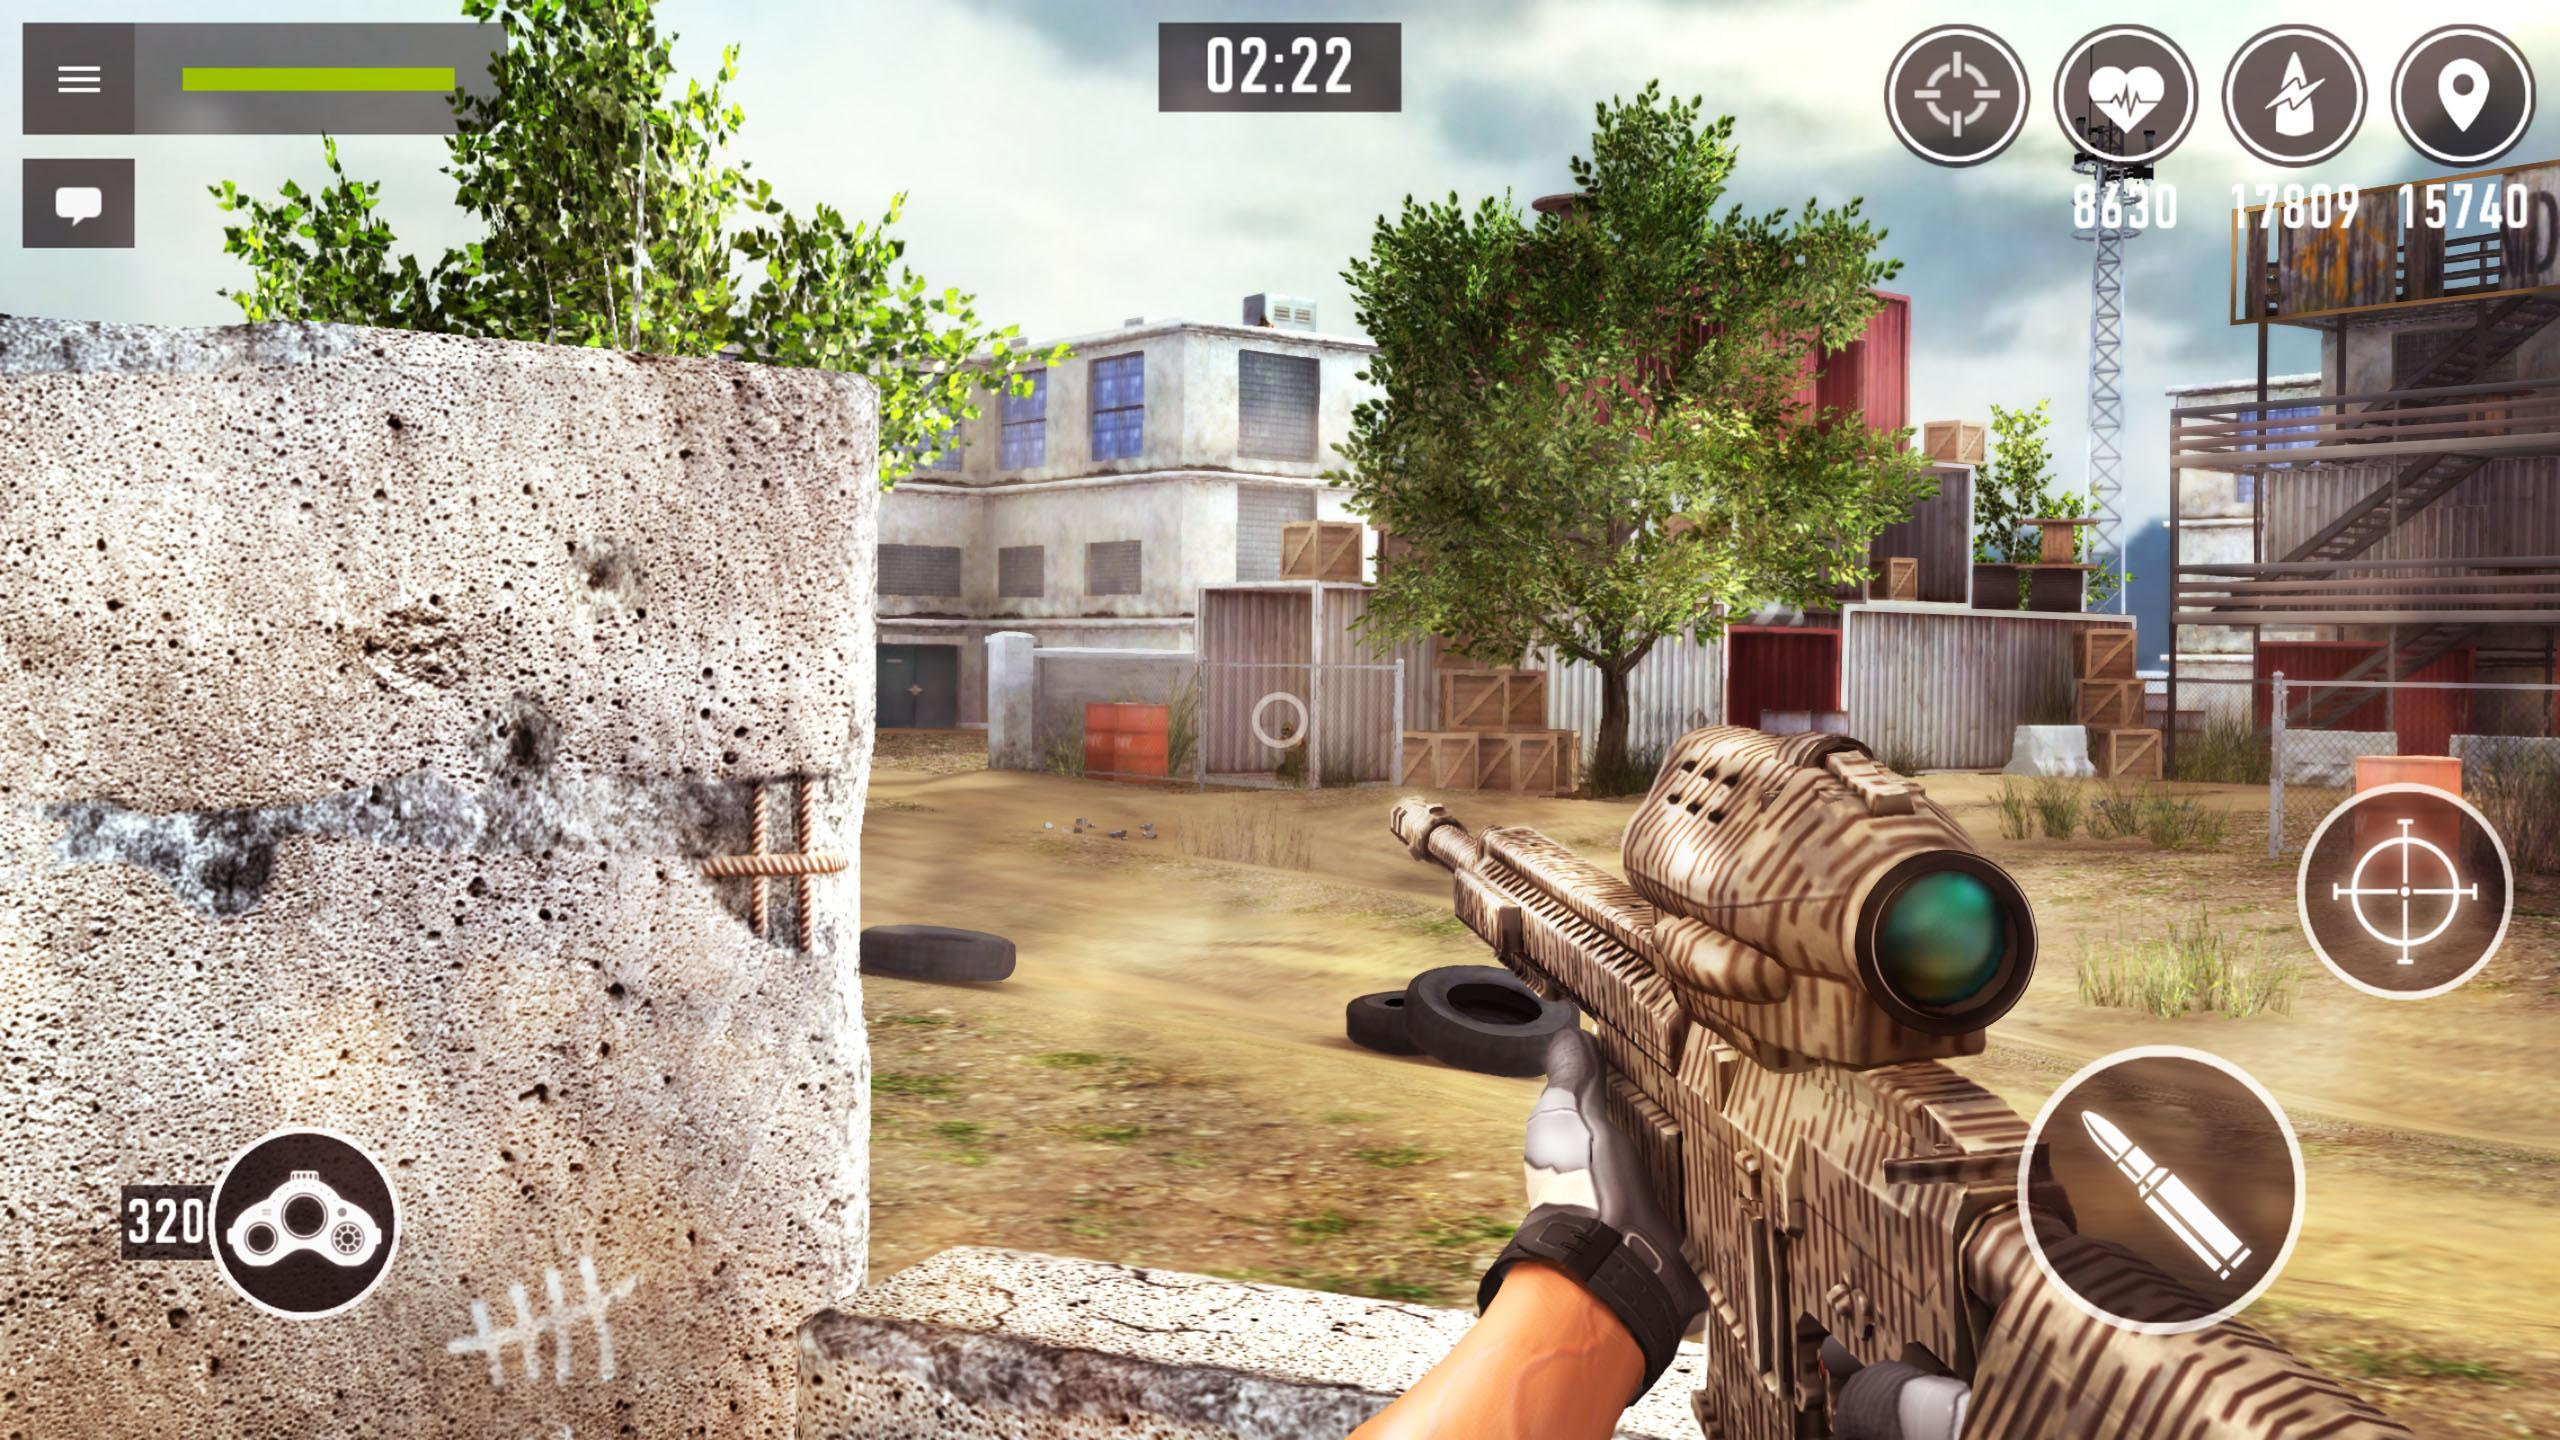 Sniper Arena PvP Army Shooter 1.2.8 Screenshot 5